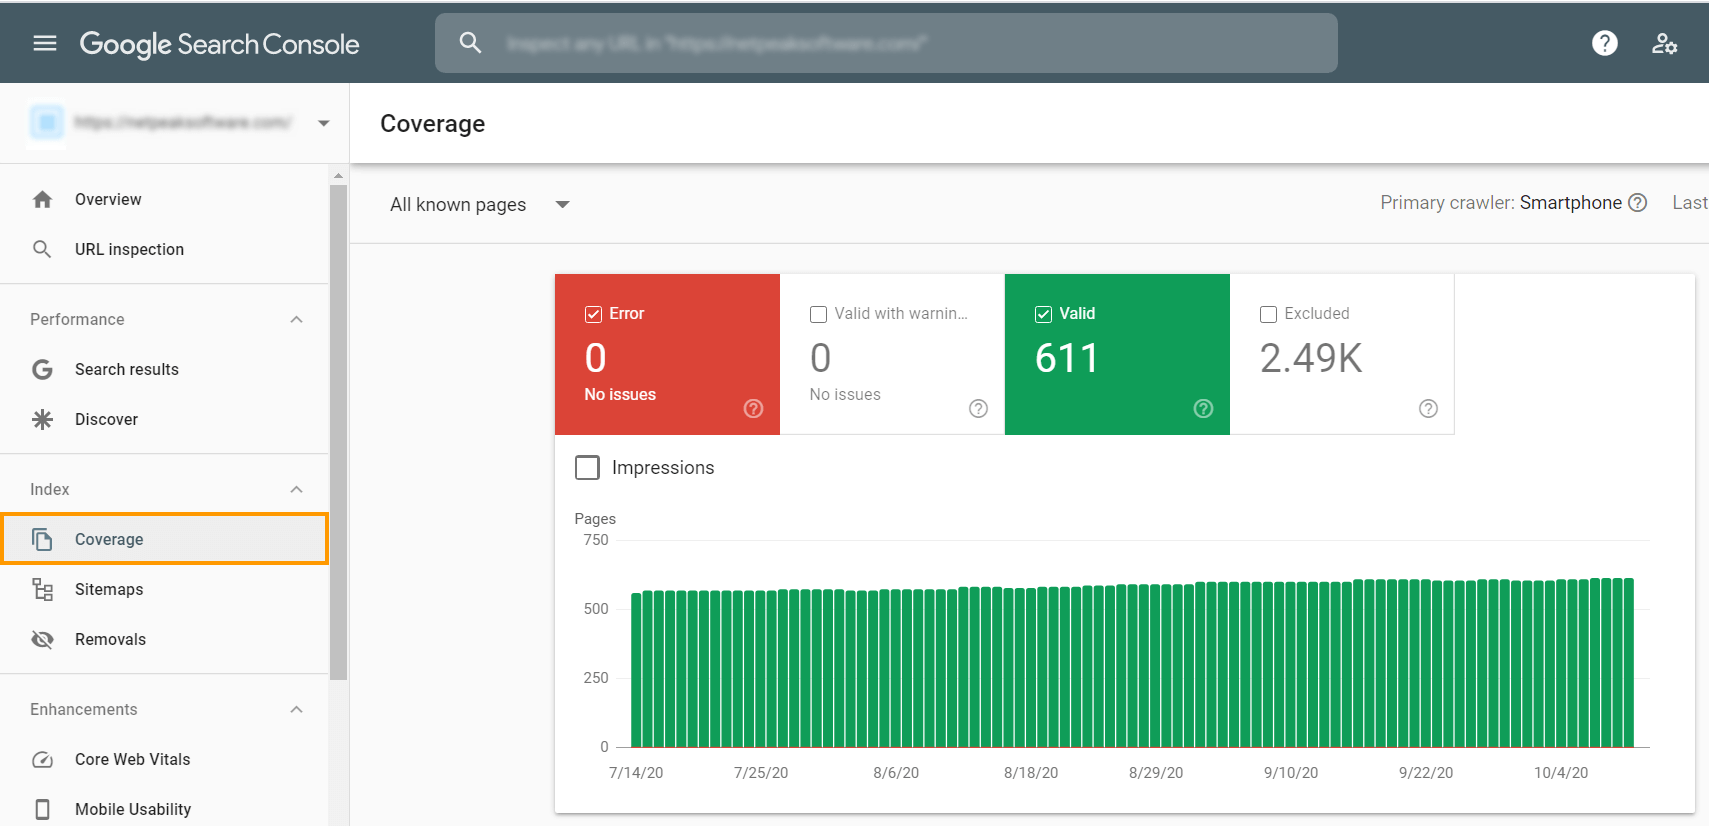 Check your index status in the 'Coverage' tab in Google Search Console to see the number of pages Google has on its index